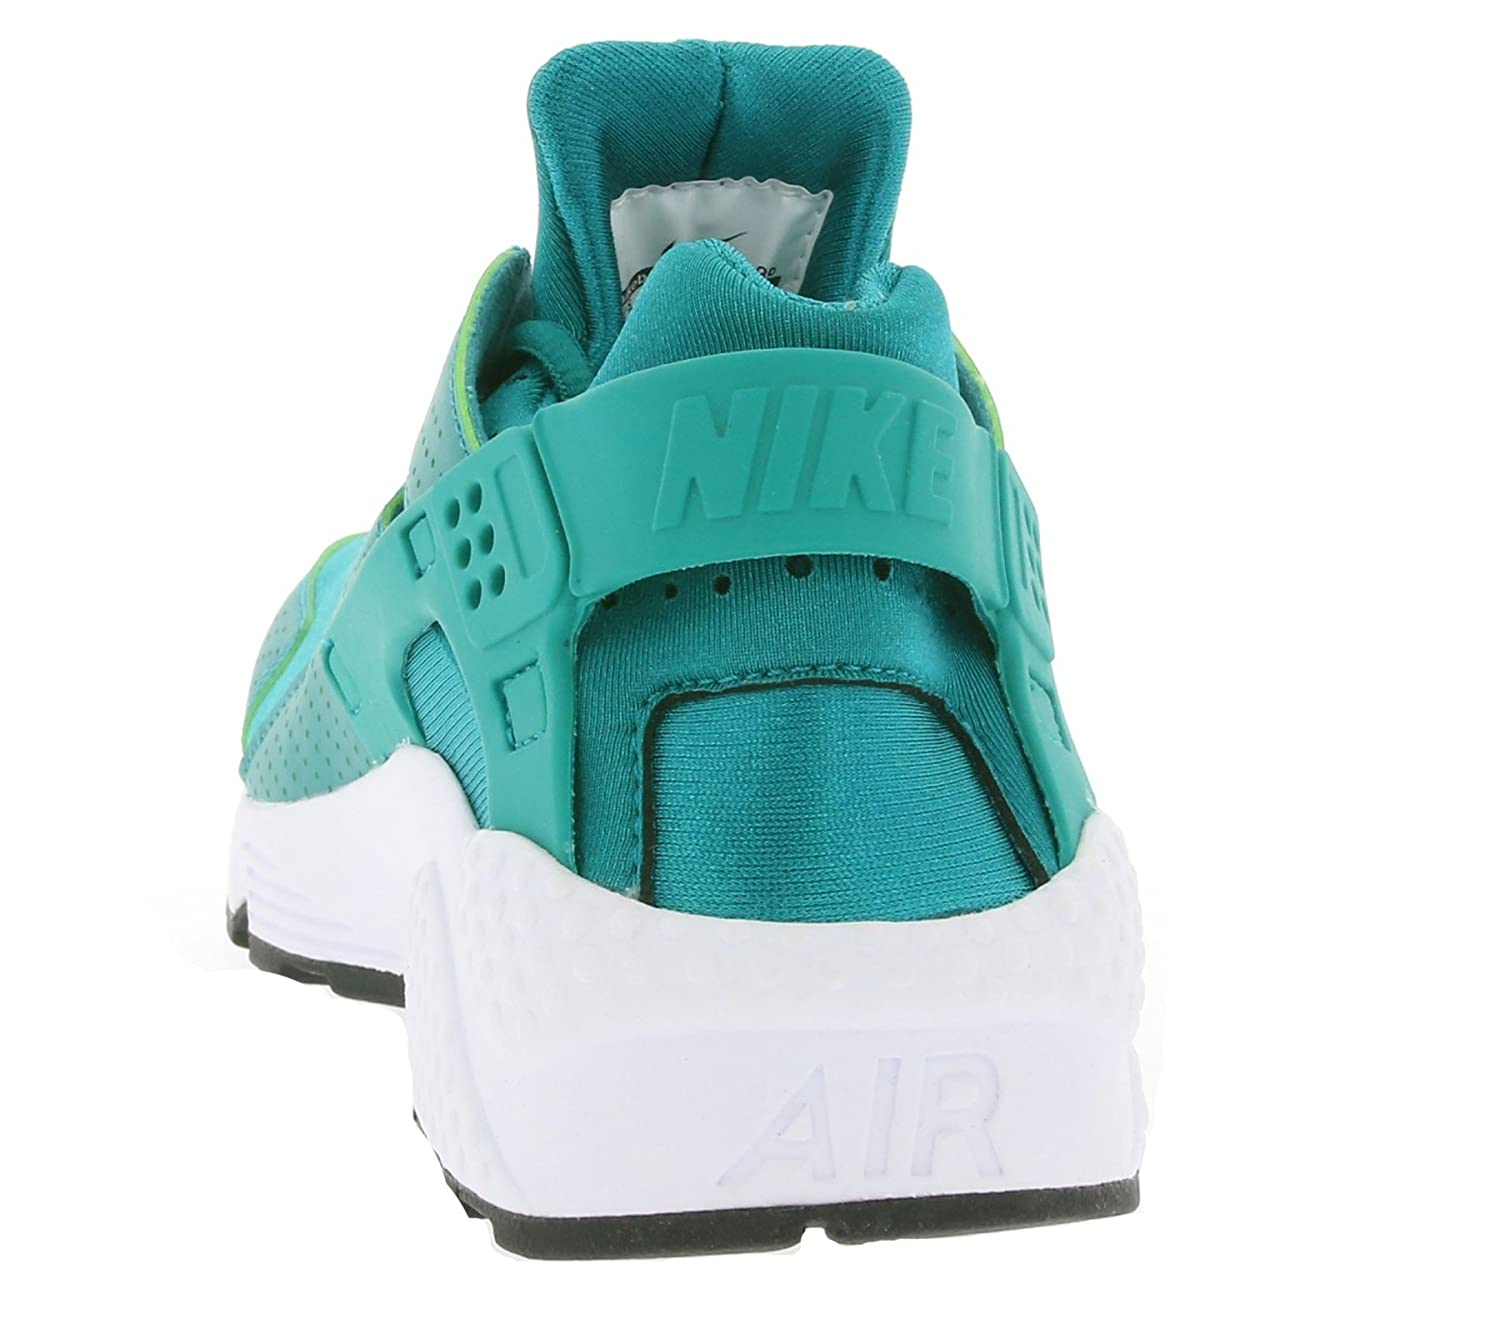 buy popular a1d33 45657 ... Nike Women s Air Air Air Huarache Run Gymnastics Shoes B01EXJPIOQ Road  Running ffb08c ...